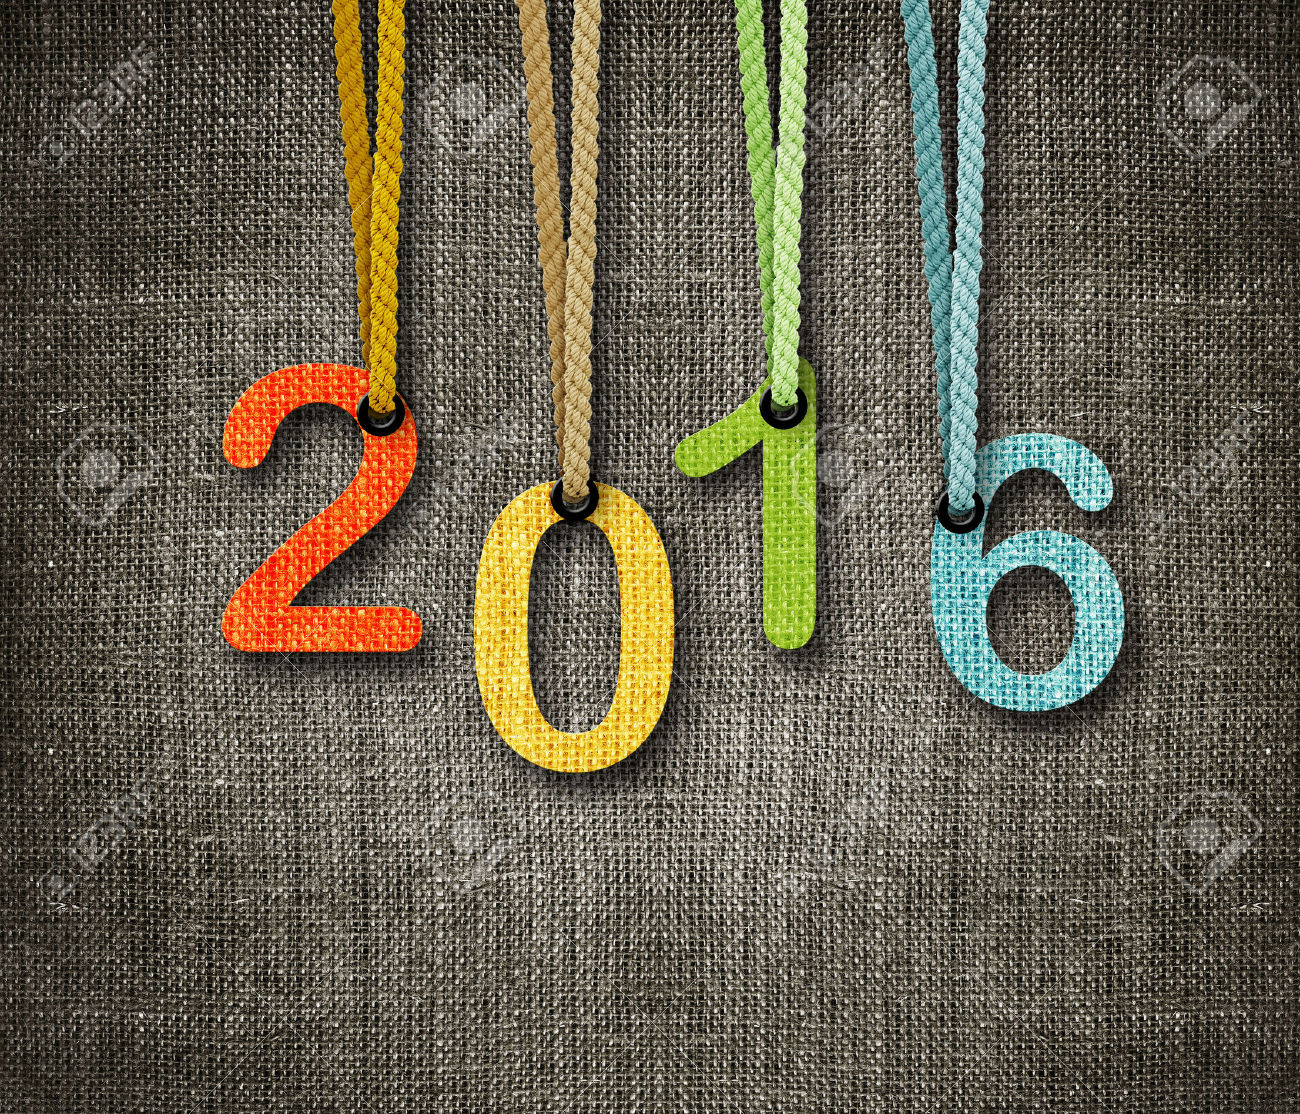 2016 >> Happy New Year 2016 Images Pictures Wallpapers 28 Donna S Beads